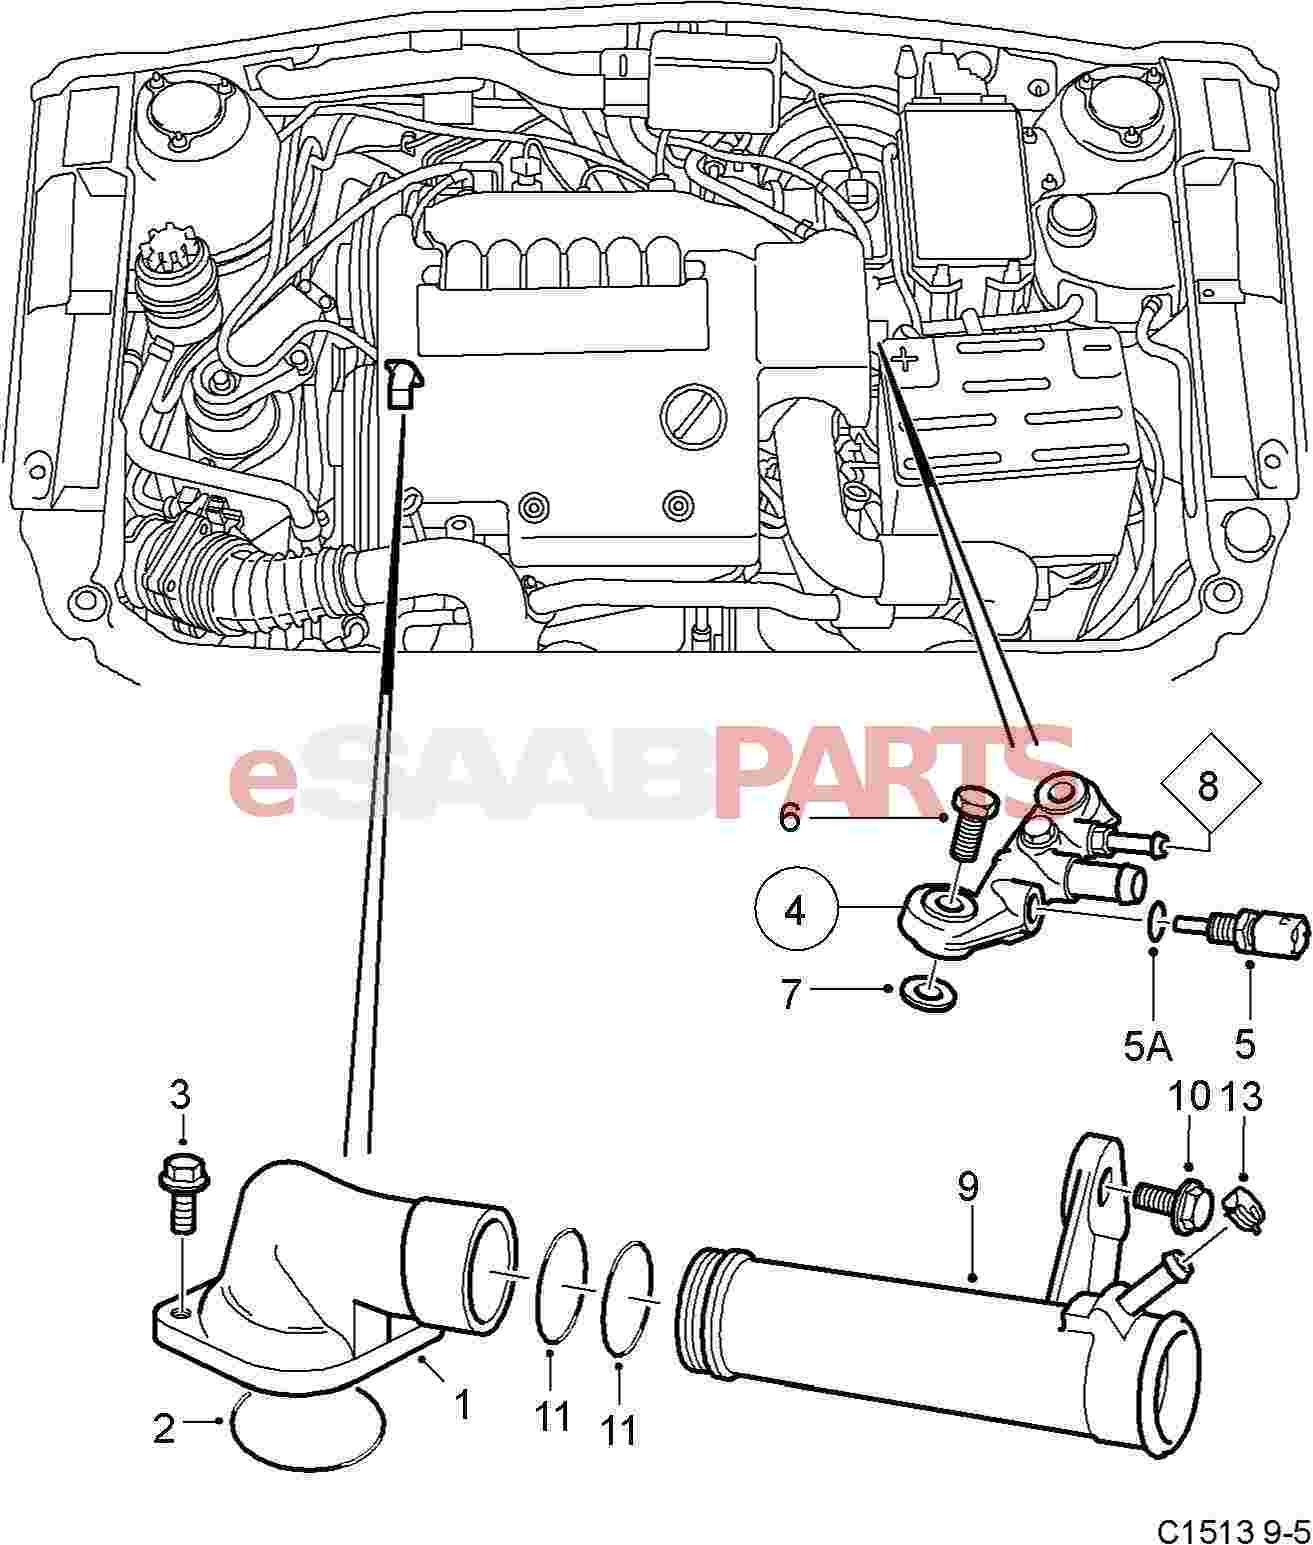 saab 9 3 engine diagram how to wire a single pole light switch 5 2 3t get free image about